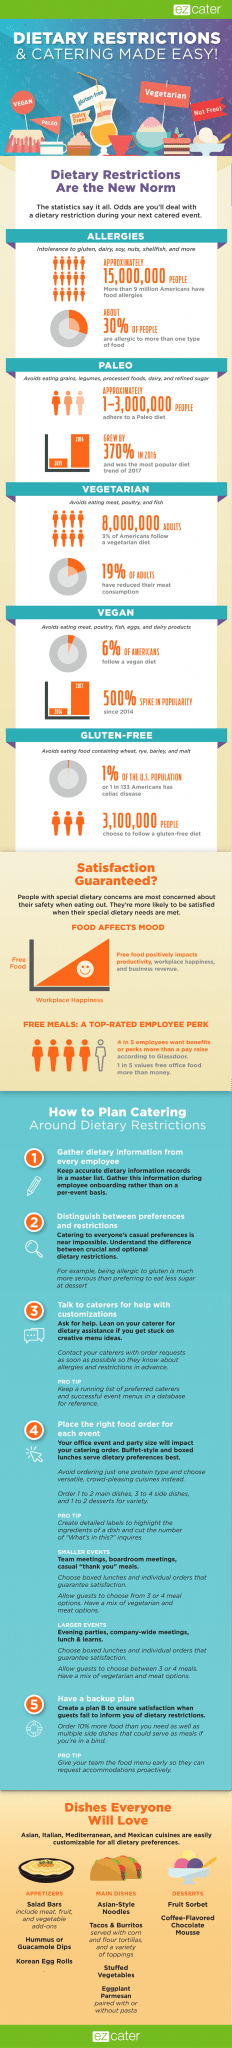 Planning Catering for Dietary Restrictions Infographic